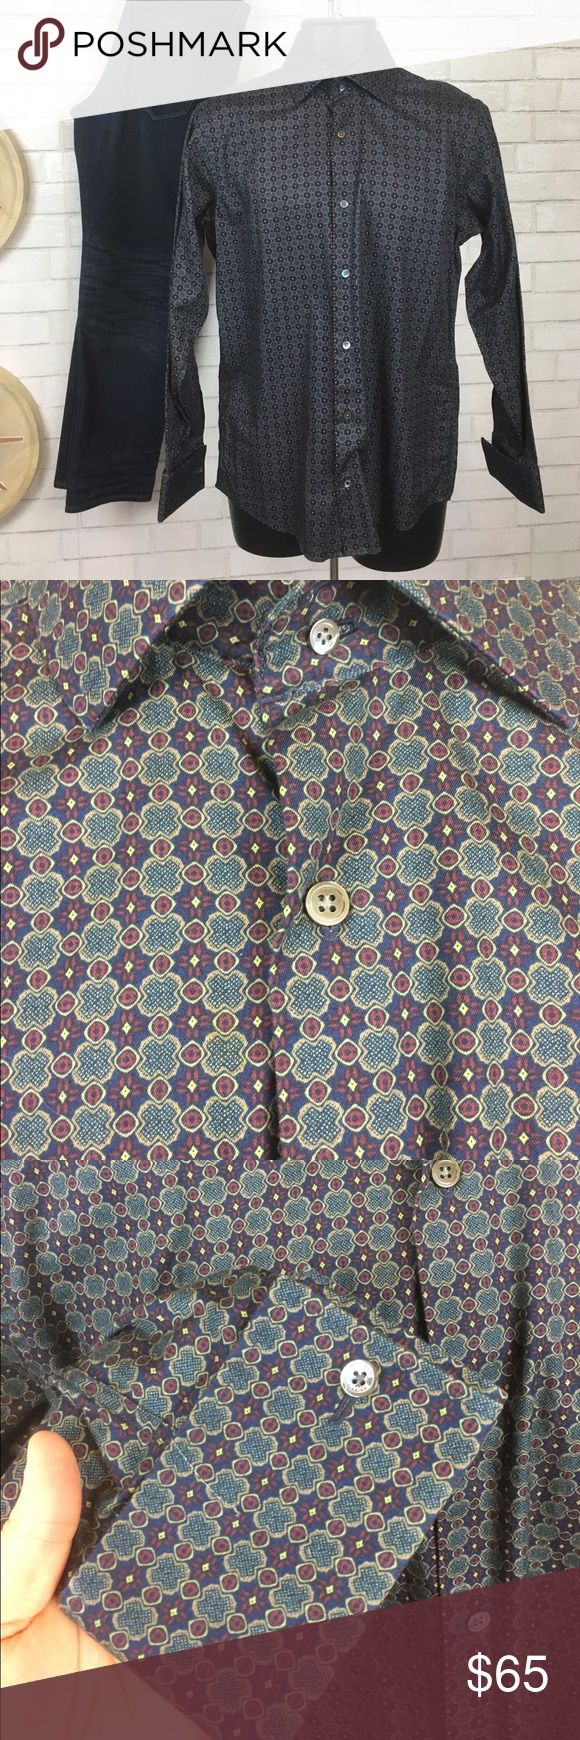 Banana Republic French Cuff ButtonDown Dress Shirt Great condition, no visible stains or tears, shirt is still has crisp folds and material feels fresh and unworn. French Cuff sleeves to be worn with cufflinks Banana Republic Shirts Dress Shirts